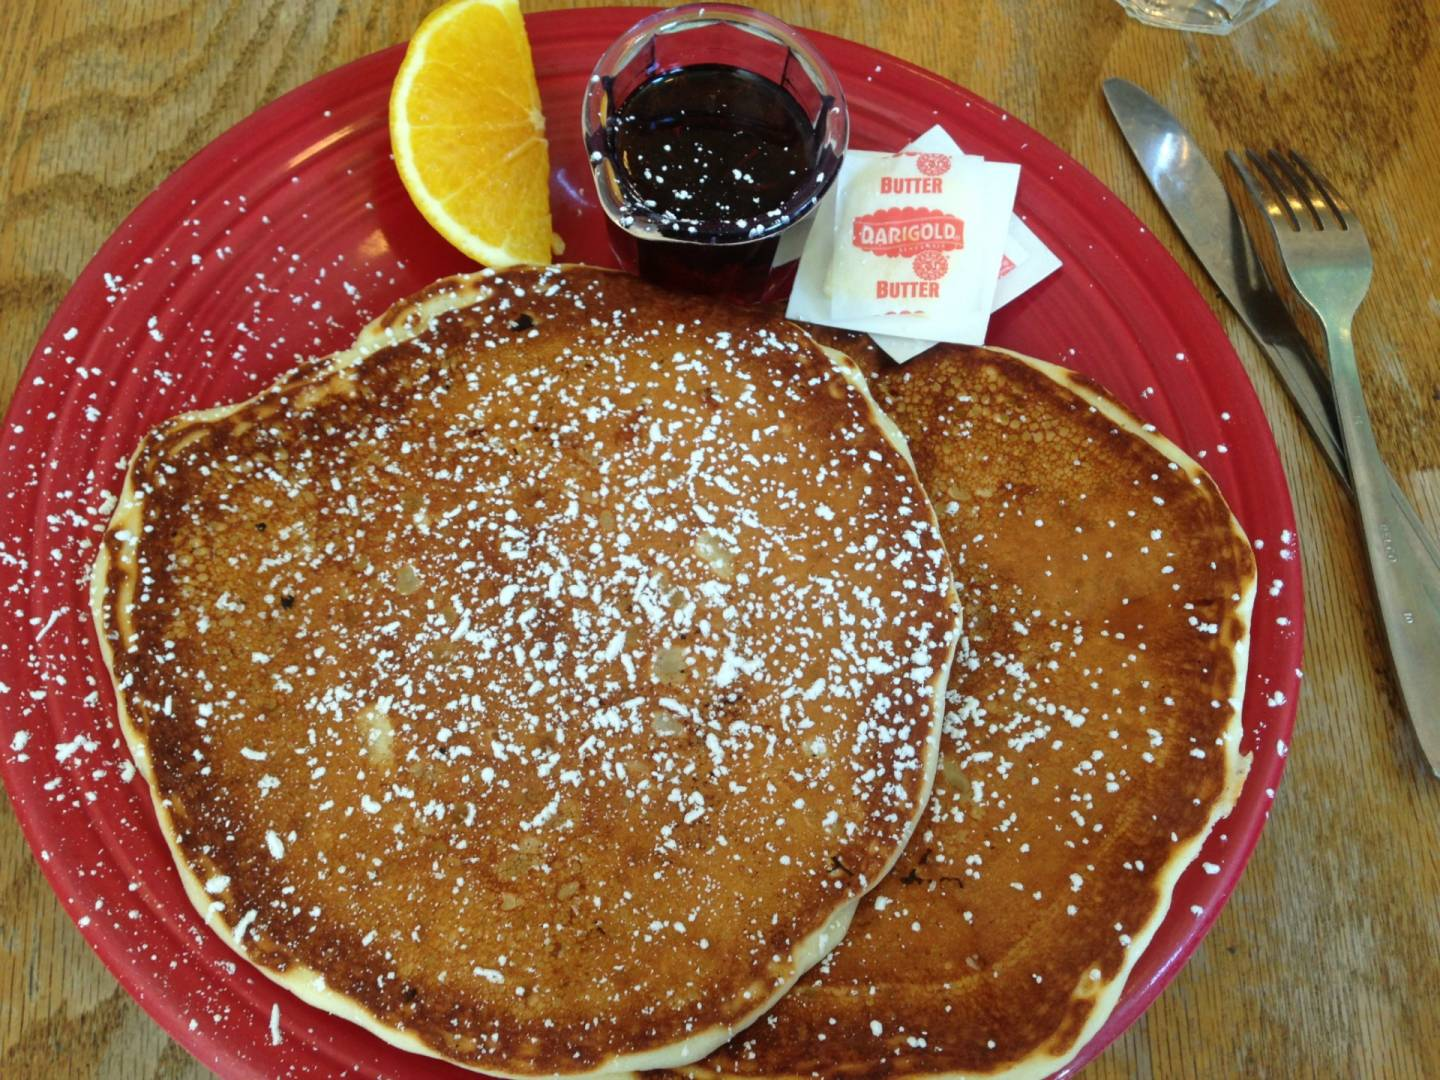 Bay Area Bites Guide to 6 Favorite Pancake Spots In Berkeley and Oakland